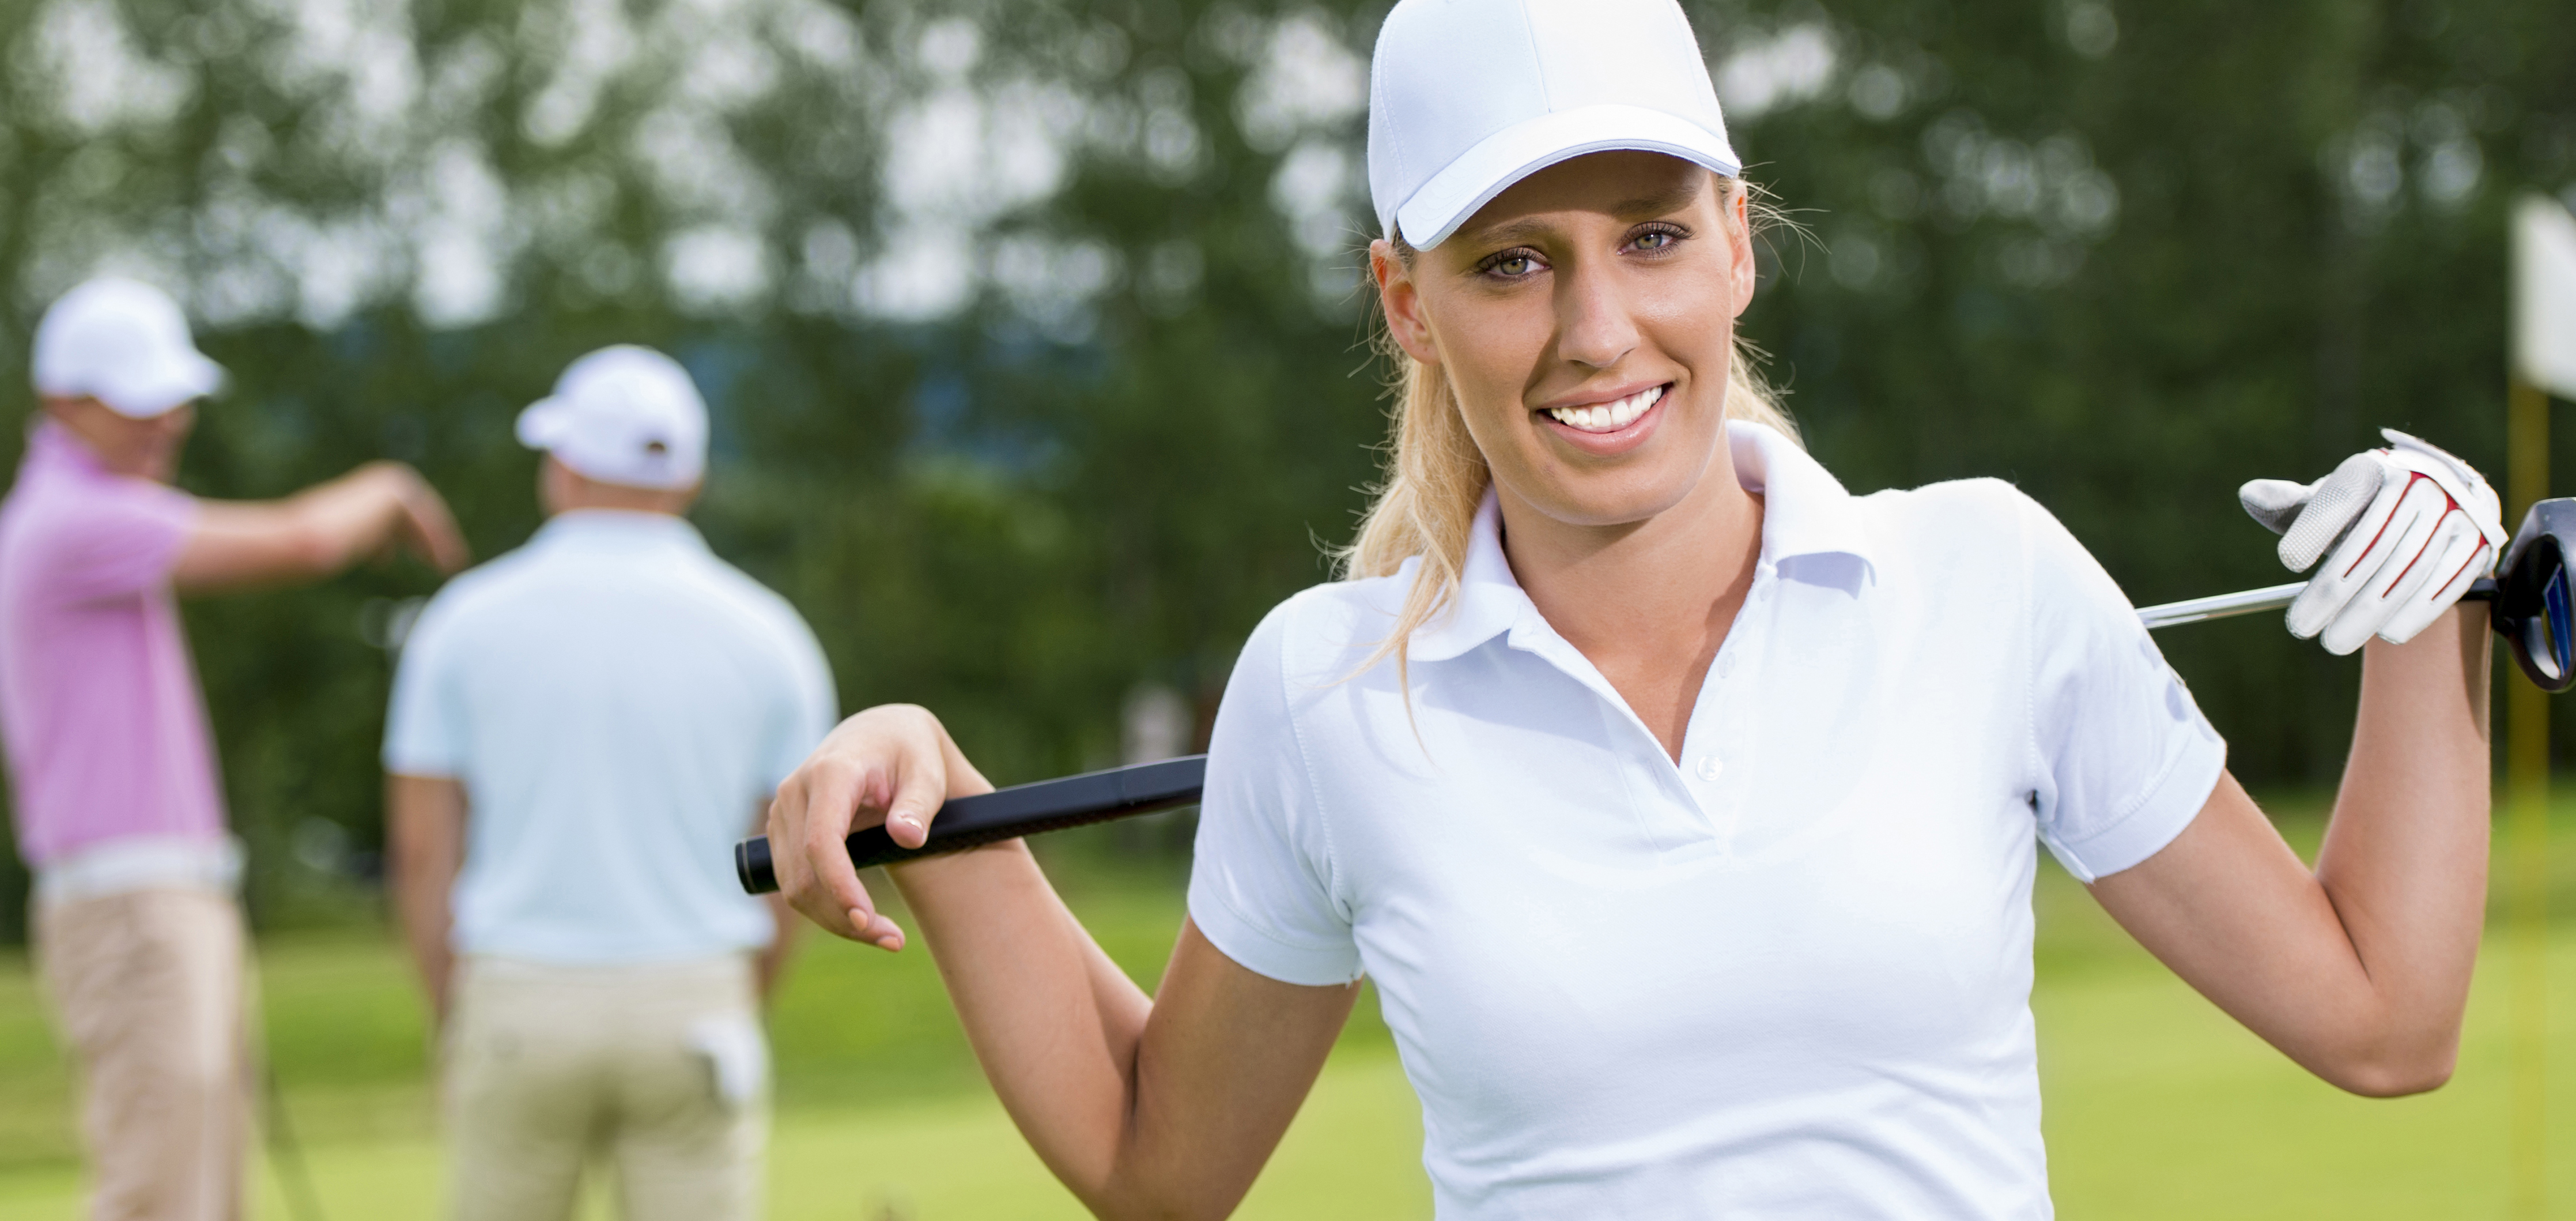 USA Golf Camp & College Campus Tours